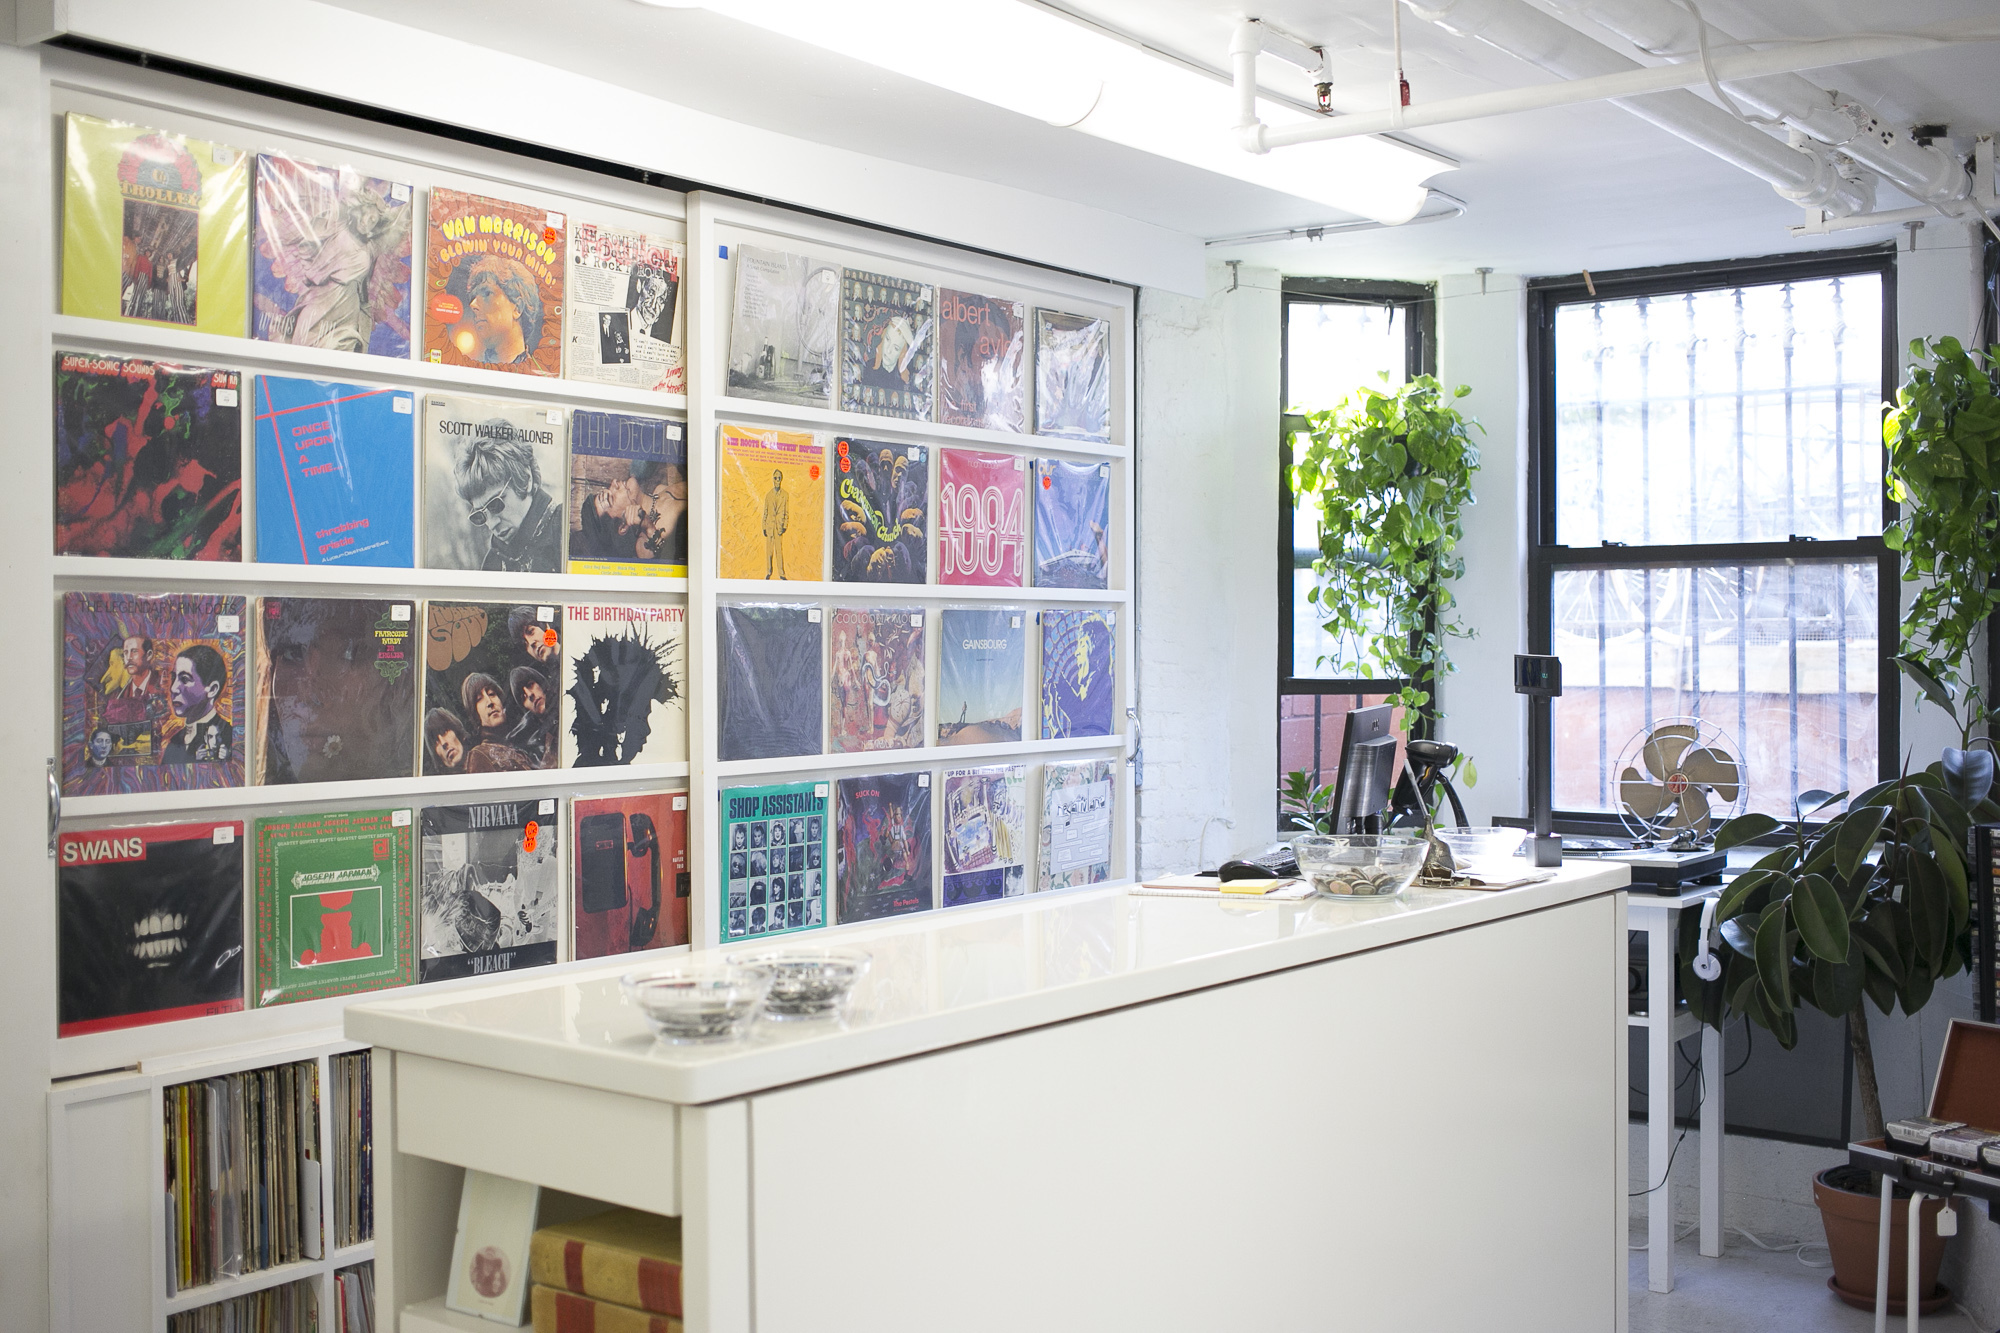 19 Best Record Stores in NYC For Finding New Music and Rare Vinyl